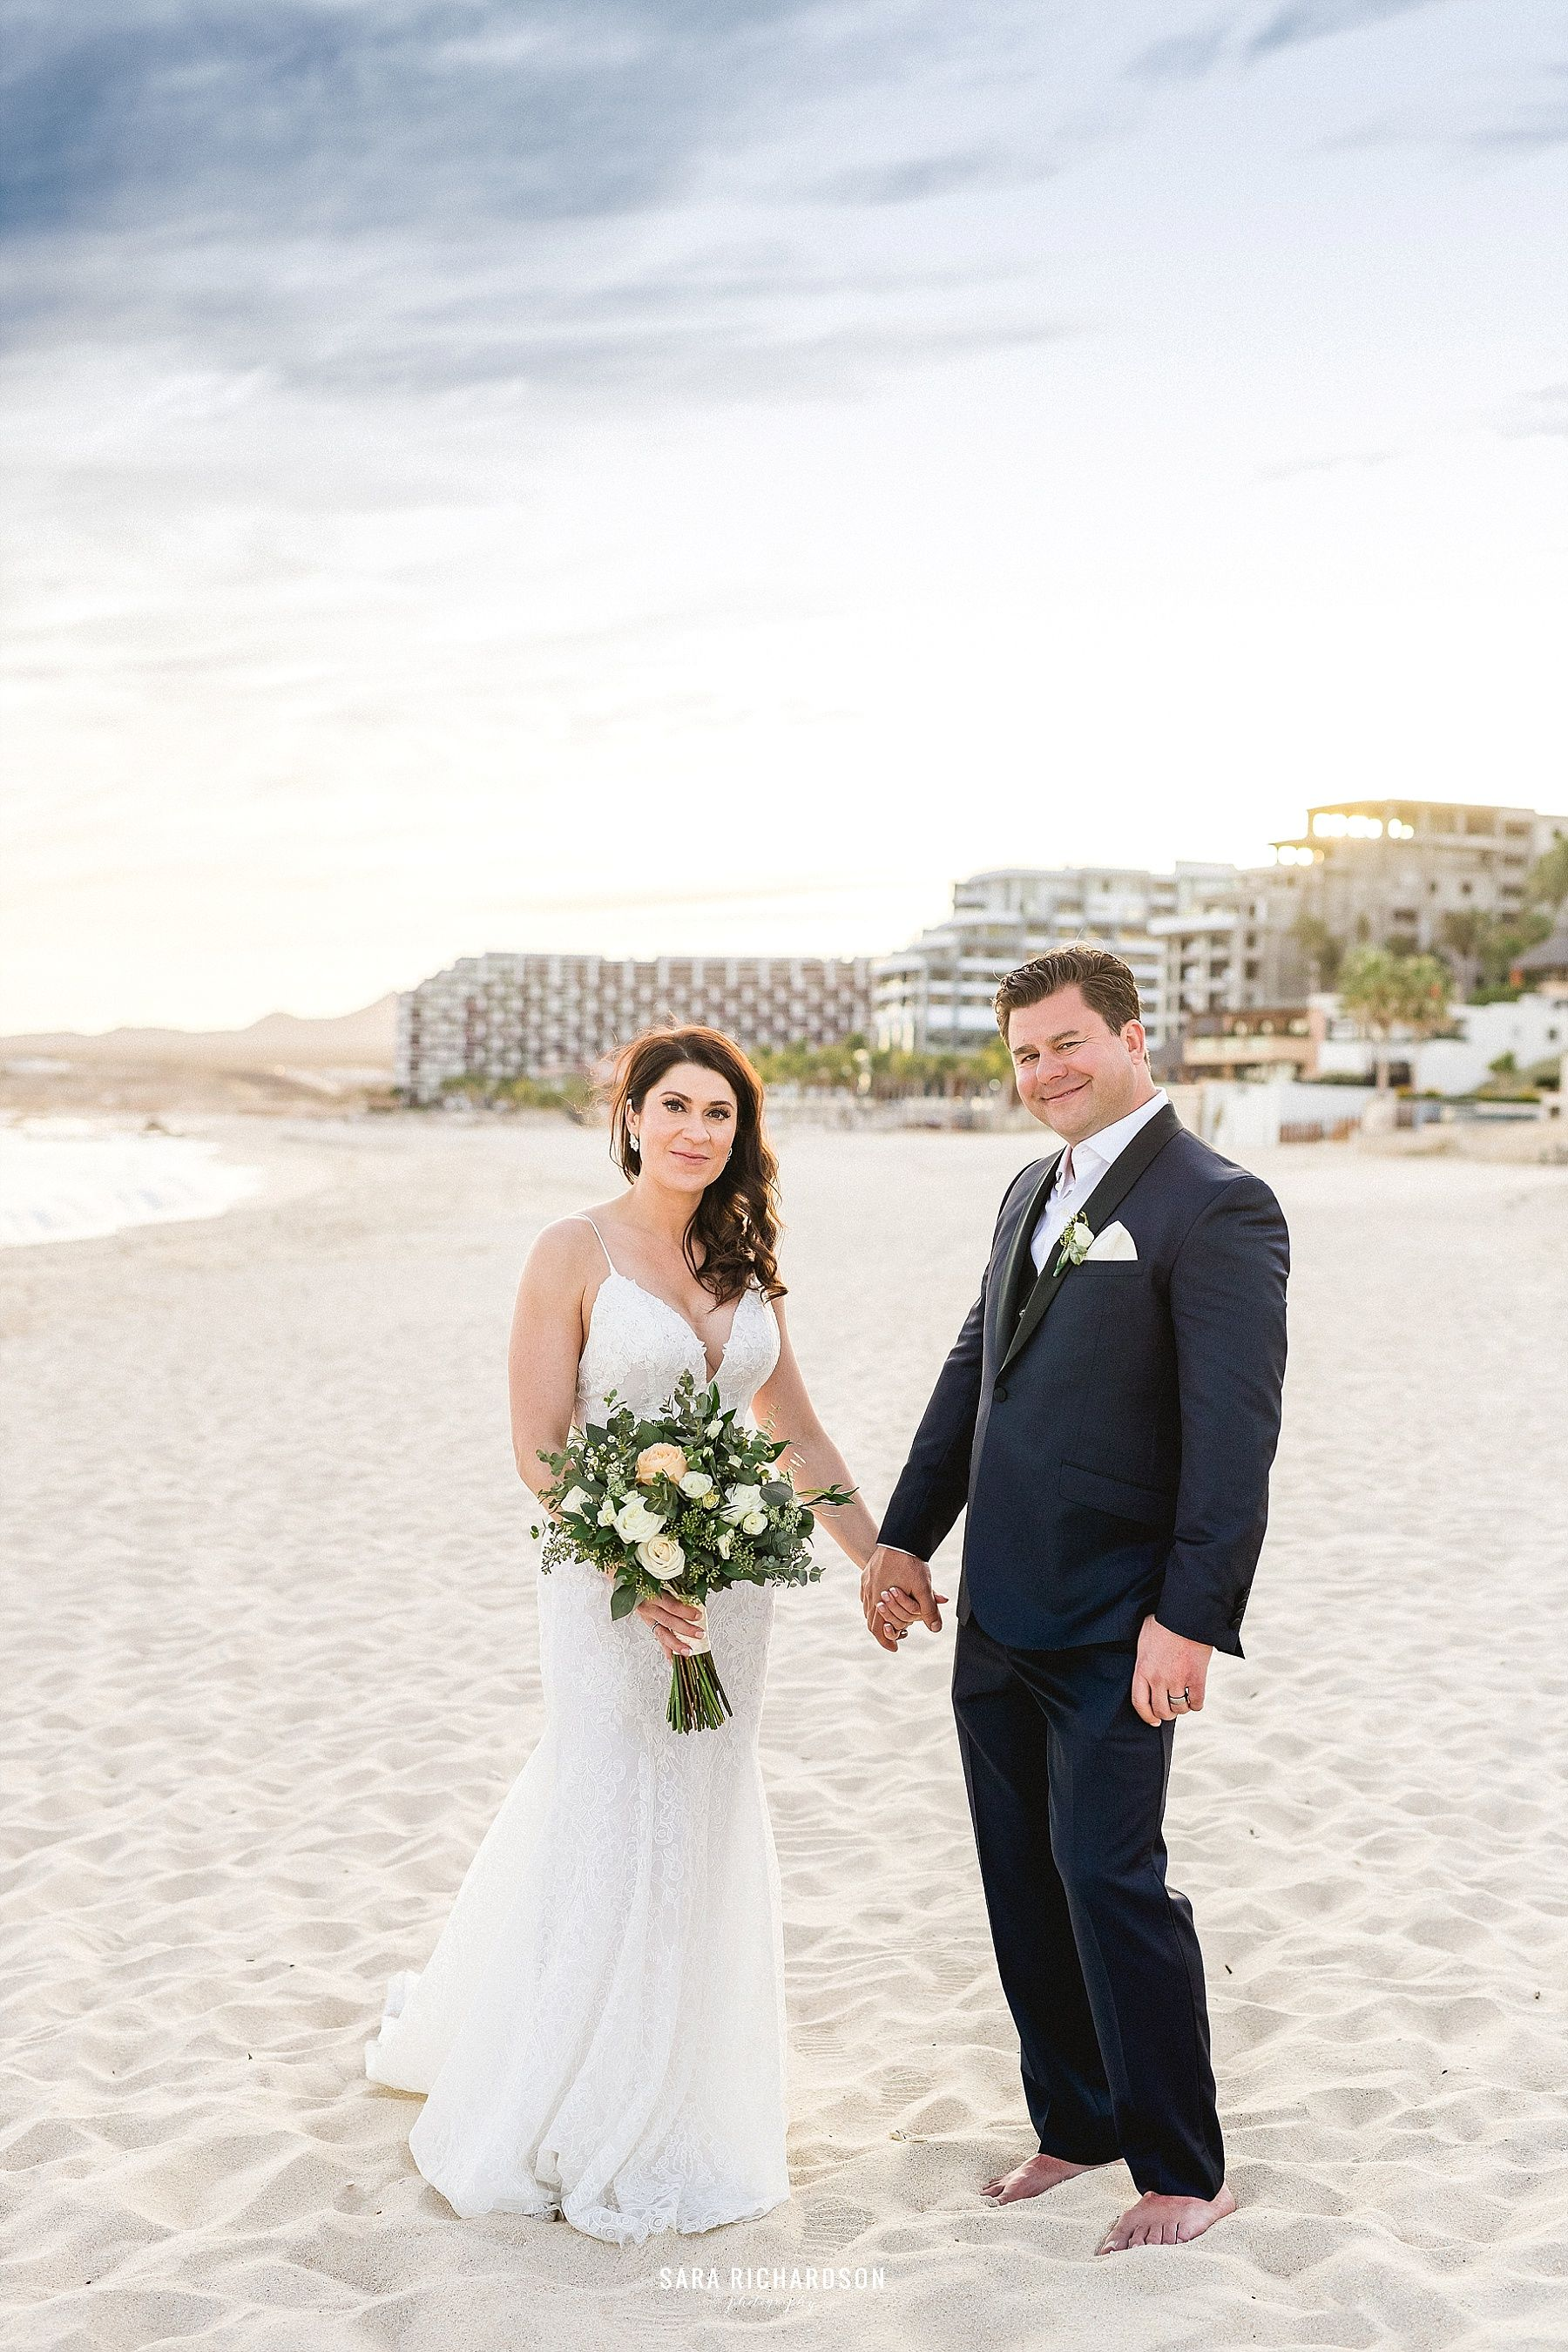 Bride and groom photo session in Los Cabos Mexico. Wedding Planning was done by Cabo Wedding Services and Wedding Design was done by Jesse Wolff